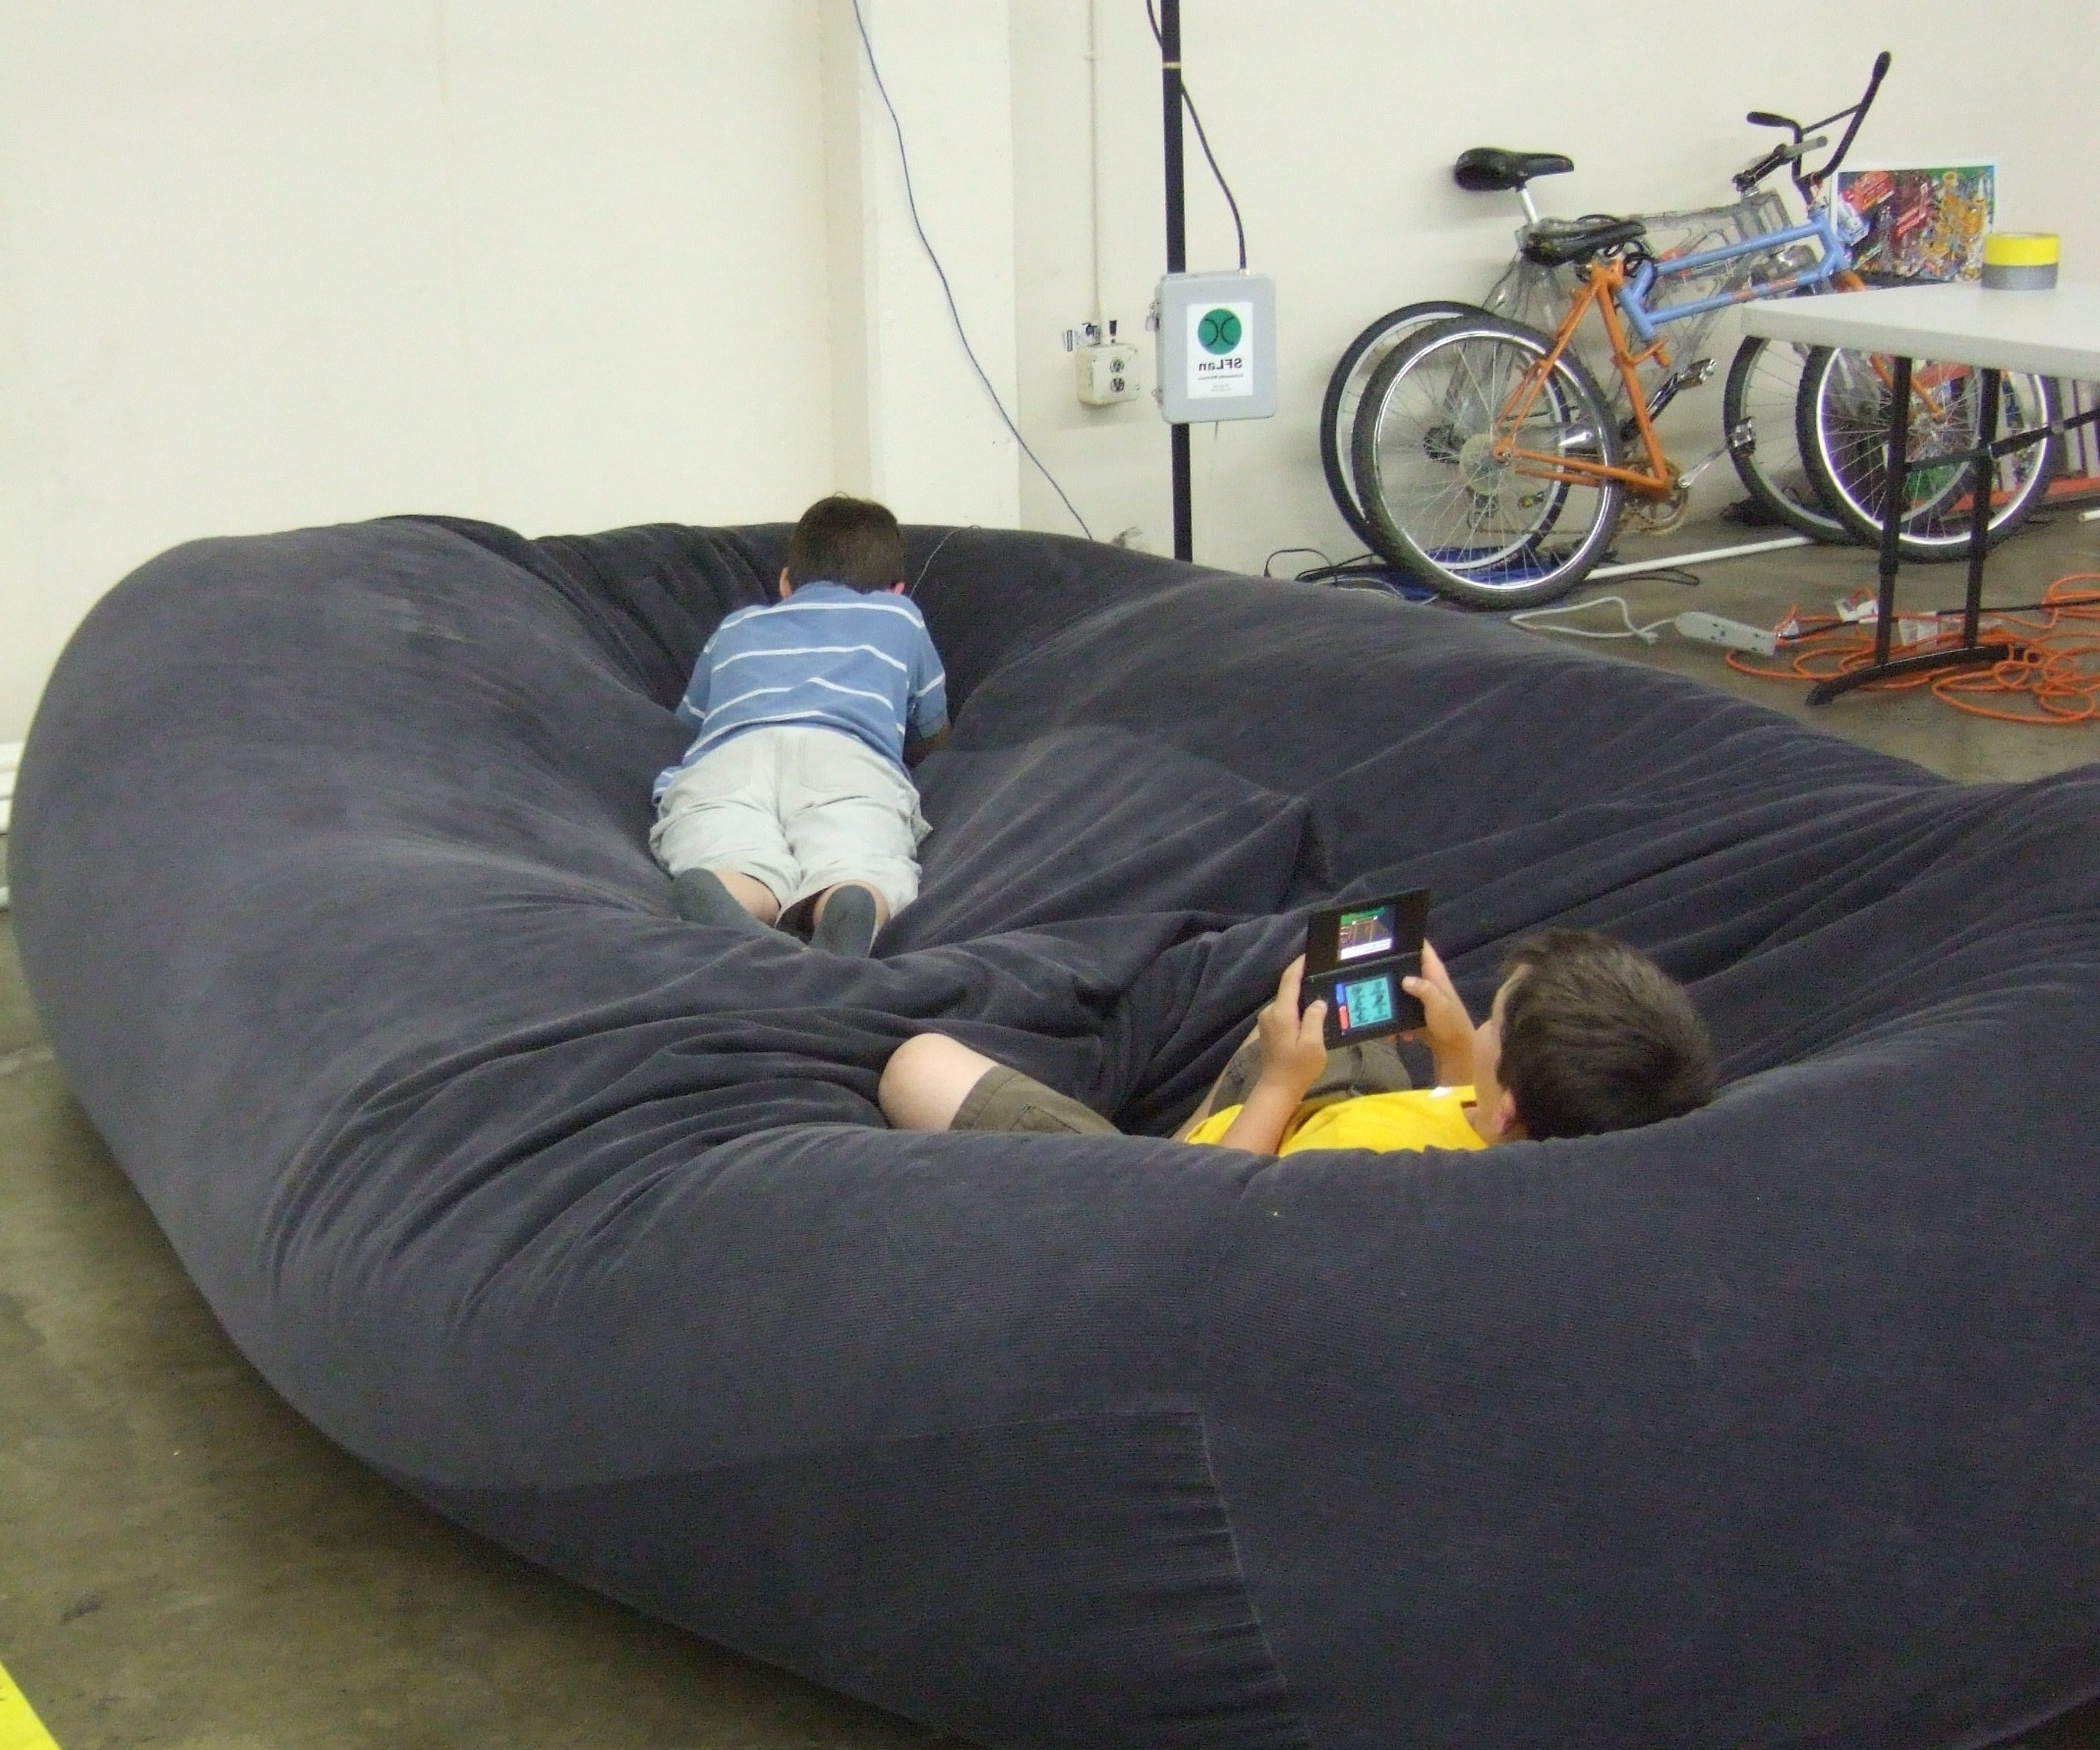 Bean Bag Sofas And Chairs Inside Preferred Bean Bag Sofa / Bed: 8 Steps (With Pictures) (View 7 of 20)